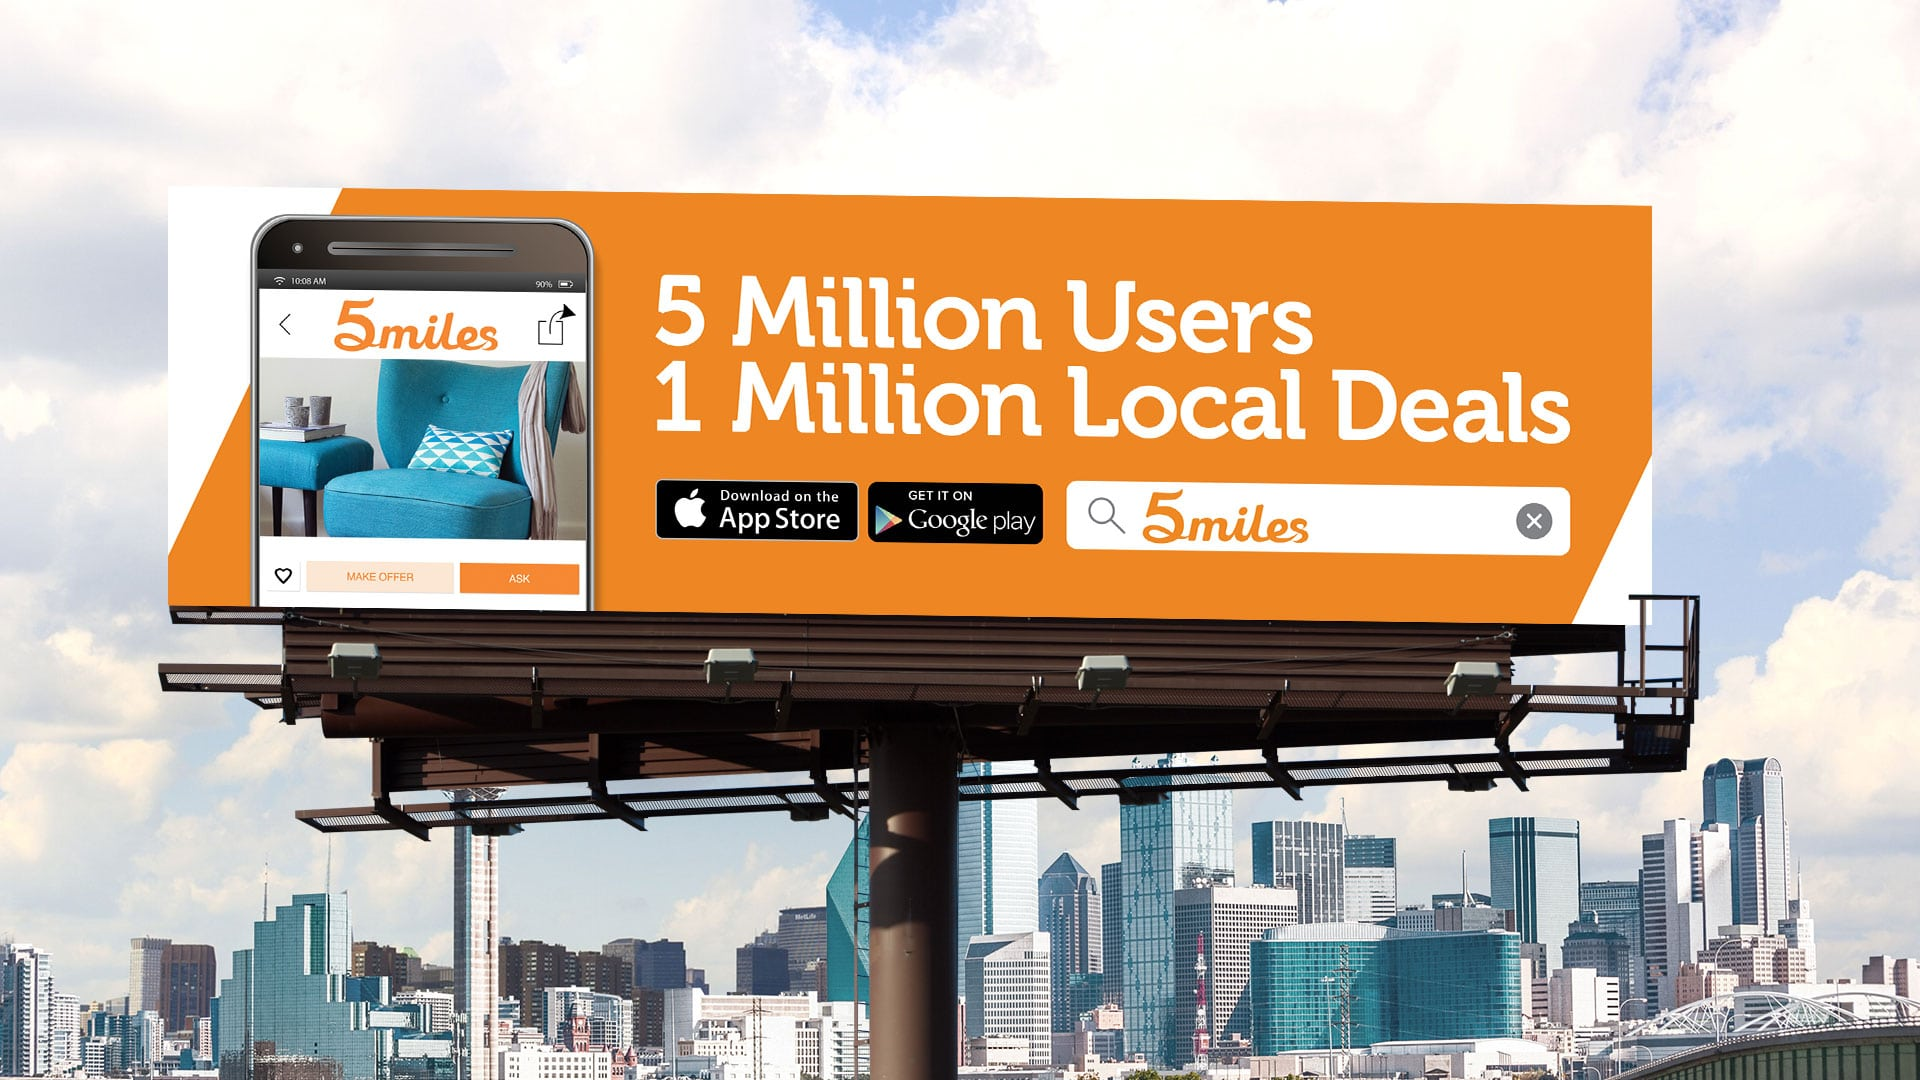 Billboard: 5Miles 5 Million Users